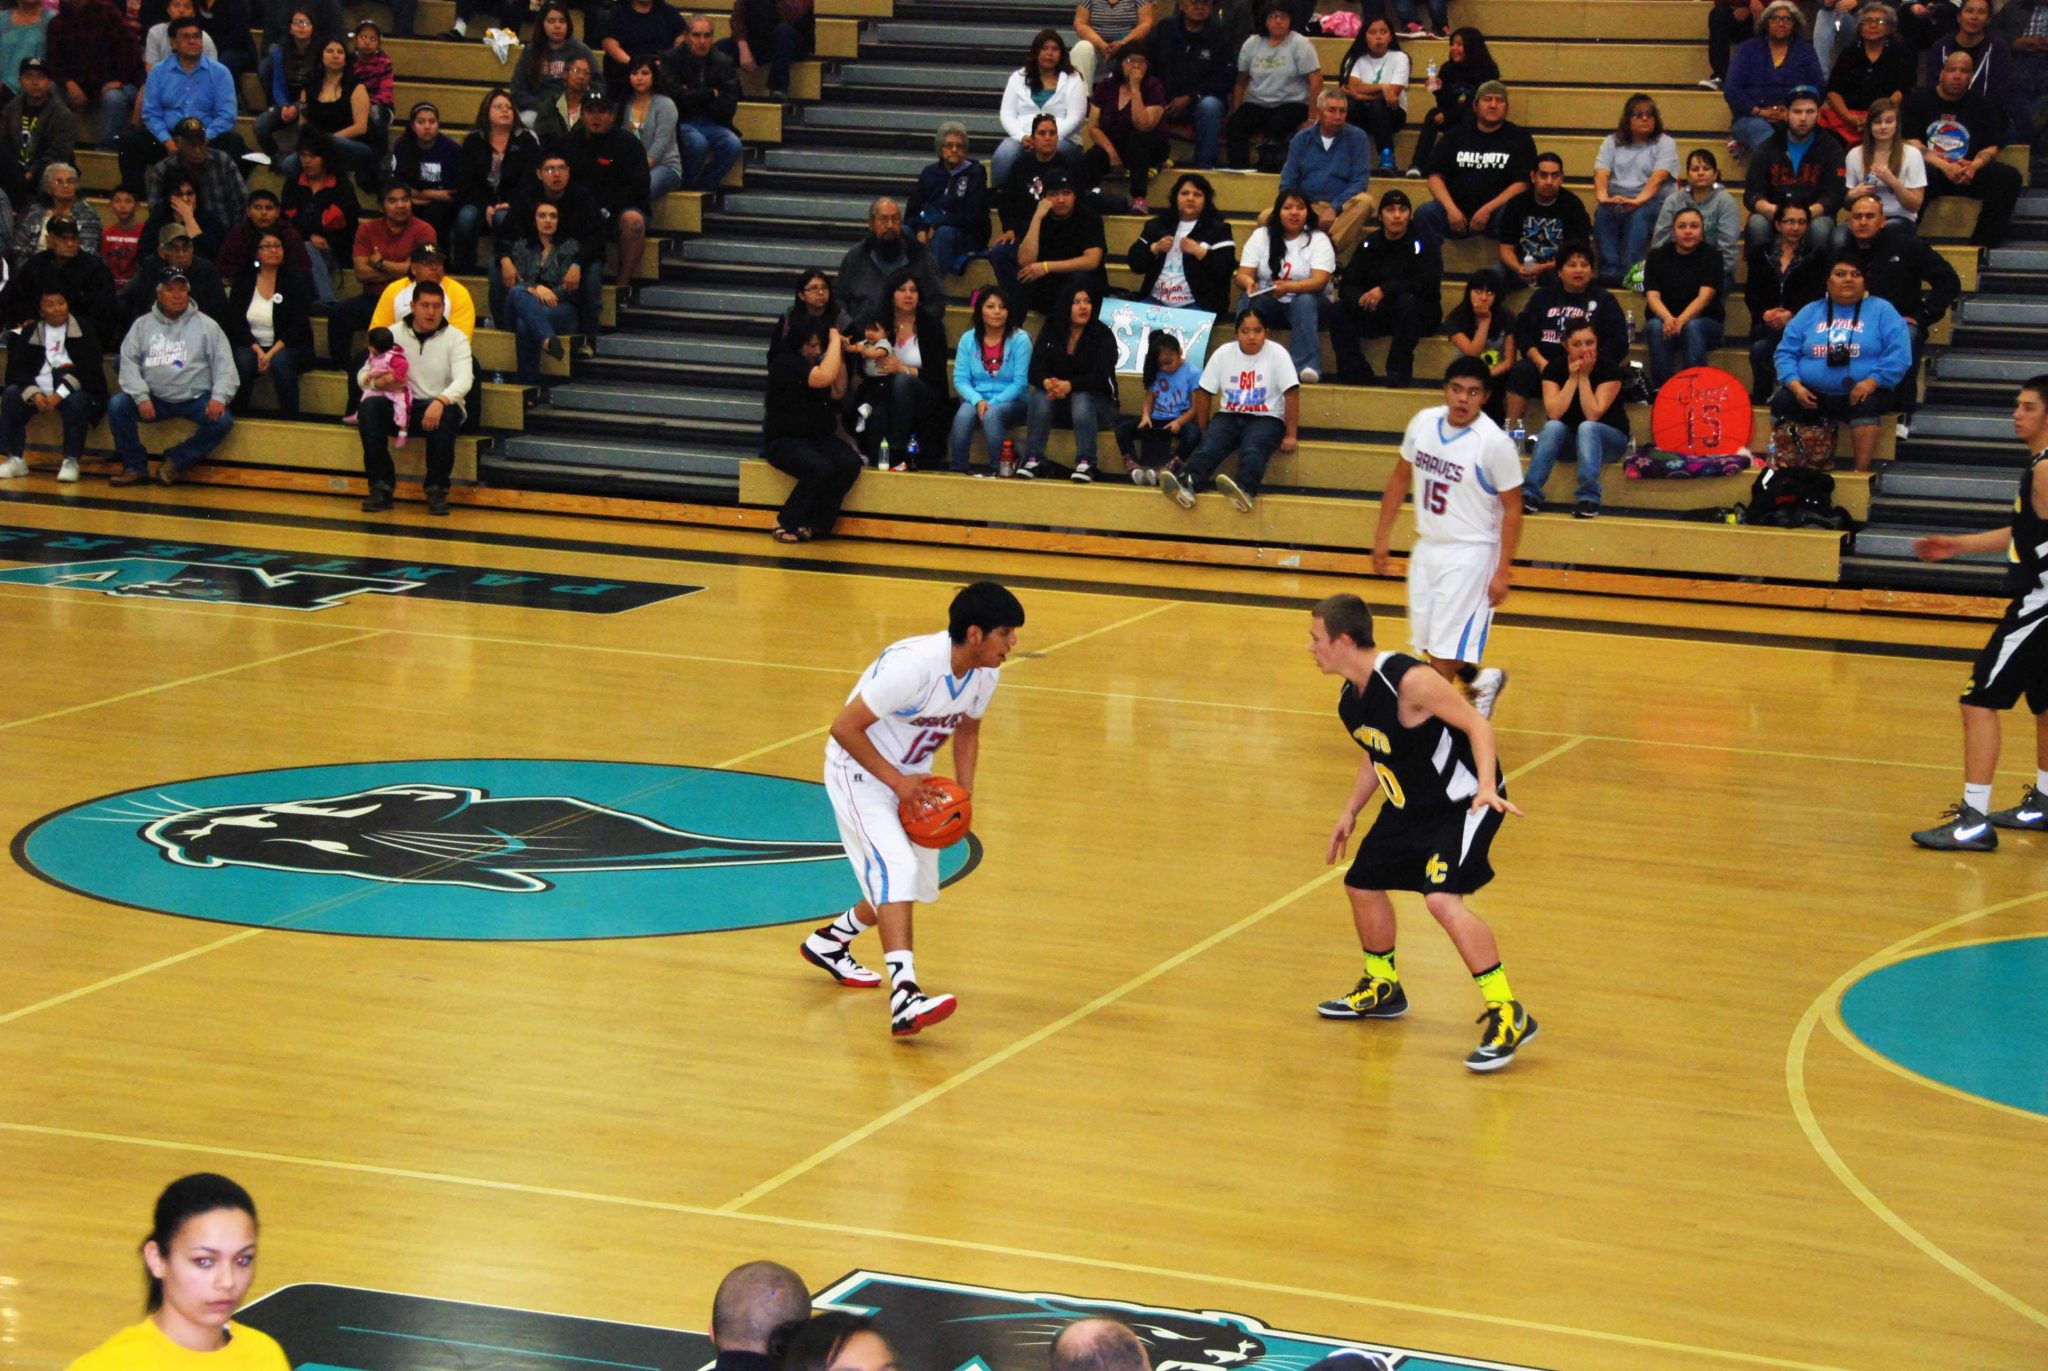 Despite late surge, Serpents eliminated from playoffs